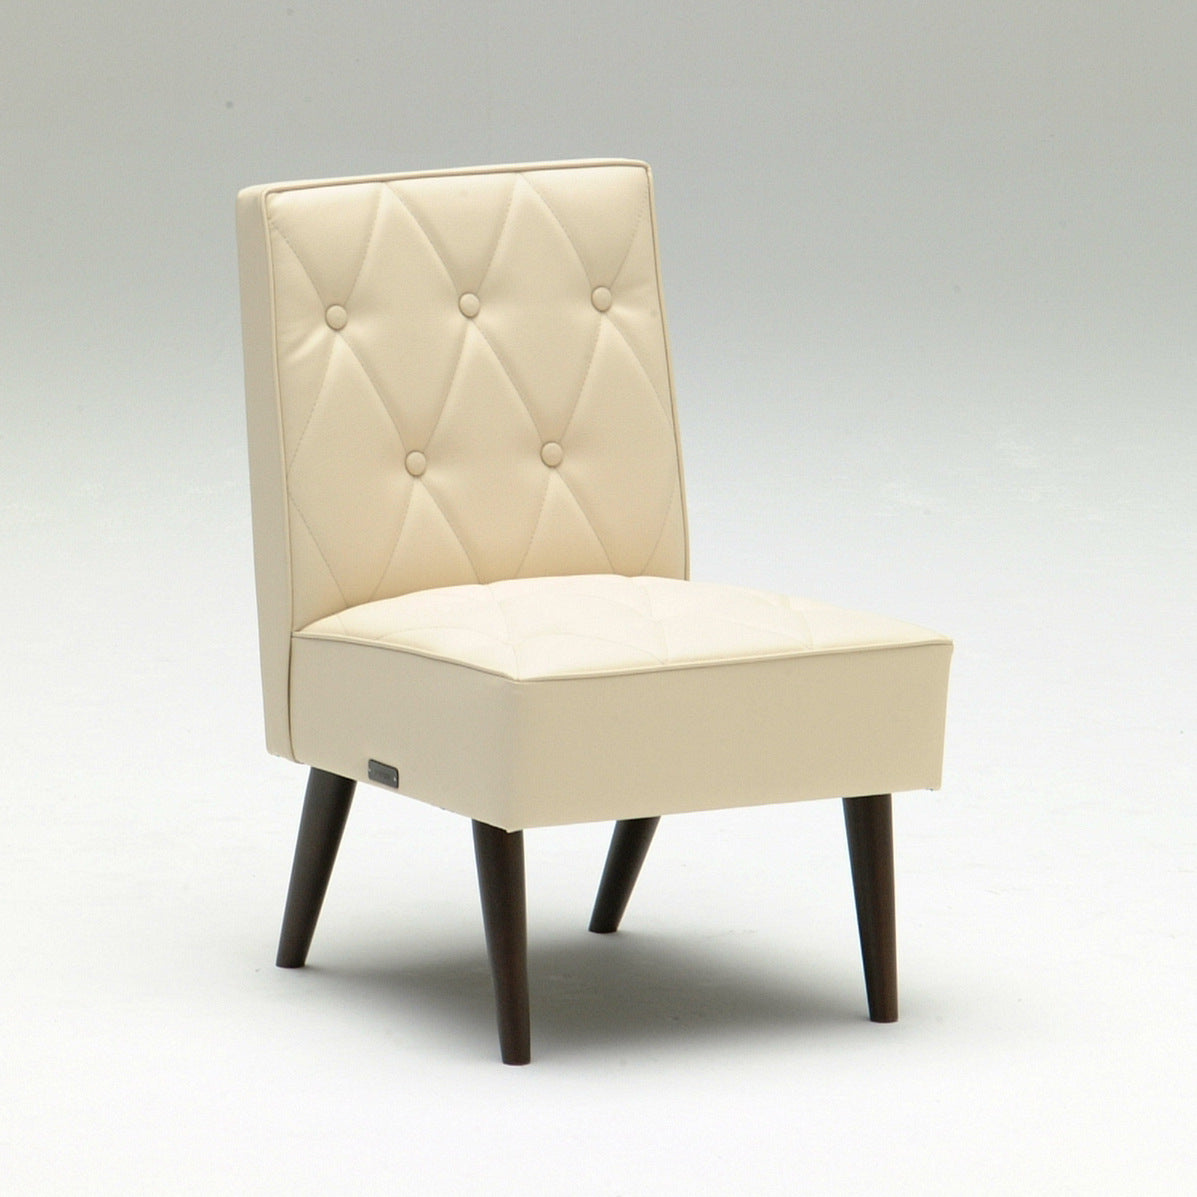 cafe chair standerd ivory